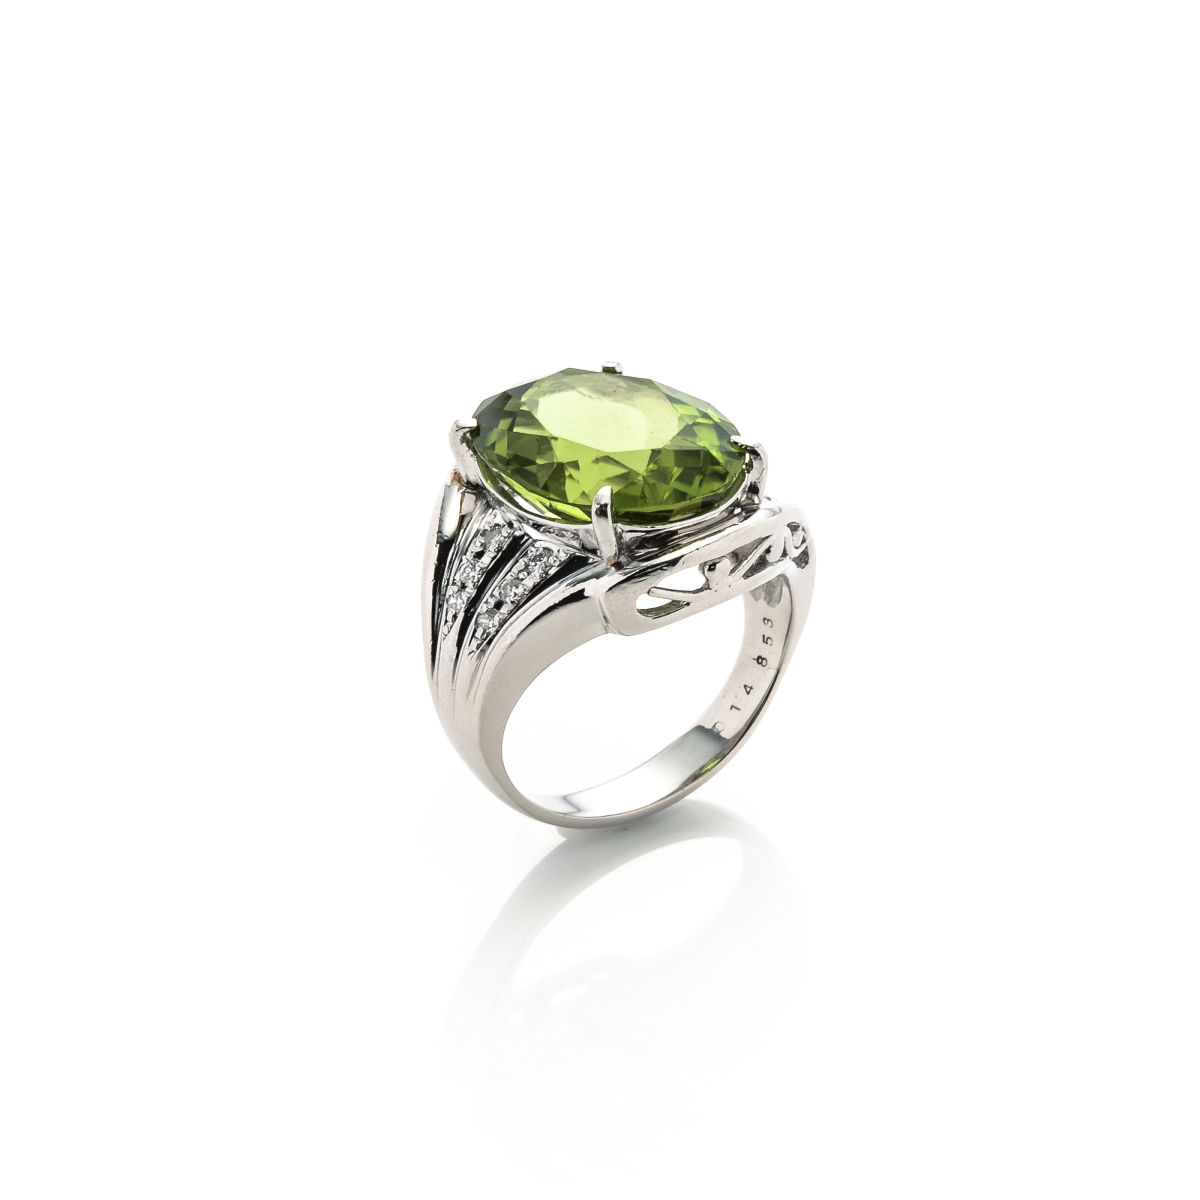 princess jewelry s new rings william genuine in women from natural peridot silver sterling item kate pure engagement vintage middleton jewelrypalace charm solid diana green ring for brand